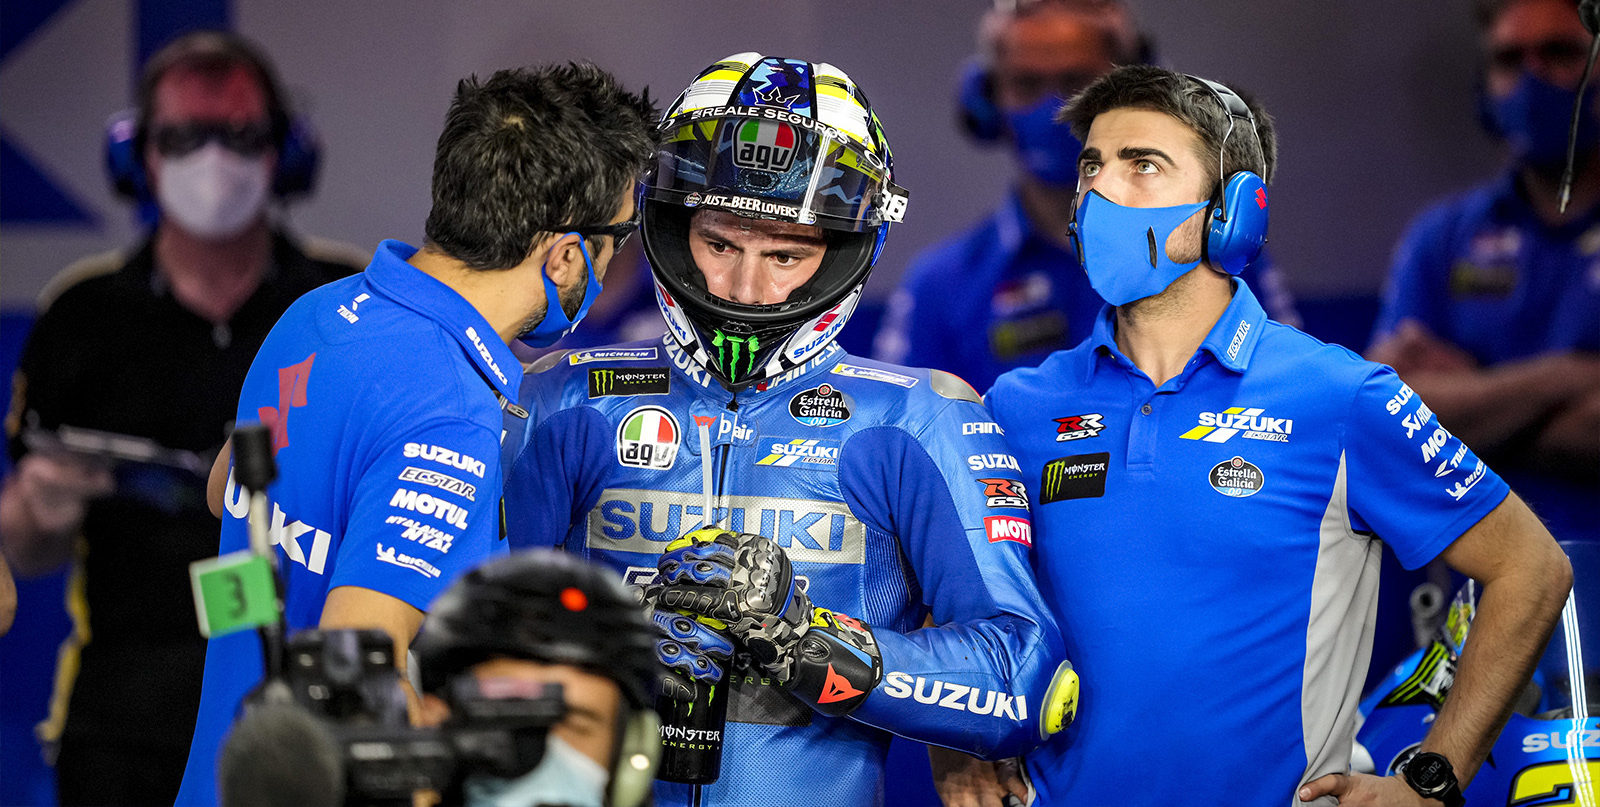 Joan Mir (center) with his Crew Chief Frankie Carchedi (left) and another crew member in Qatar. Photo courtesy Suzuki ECSTAR Team.